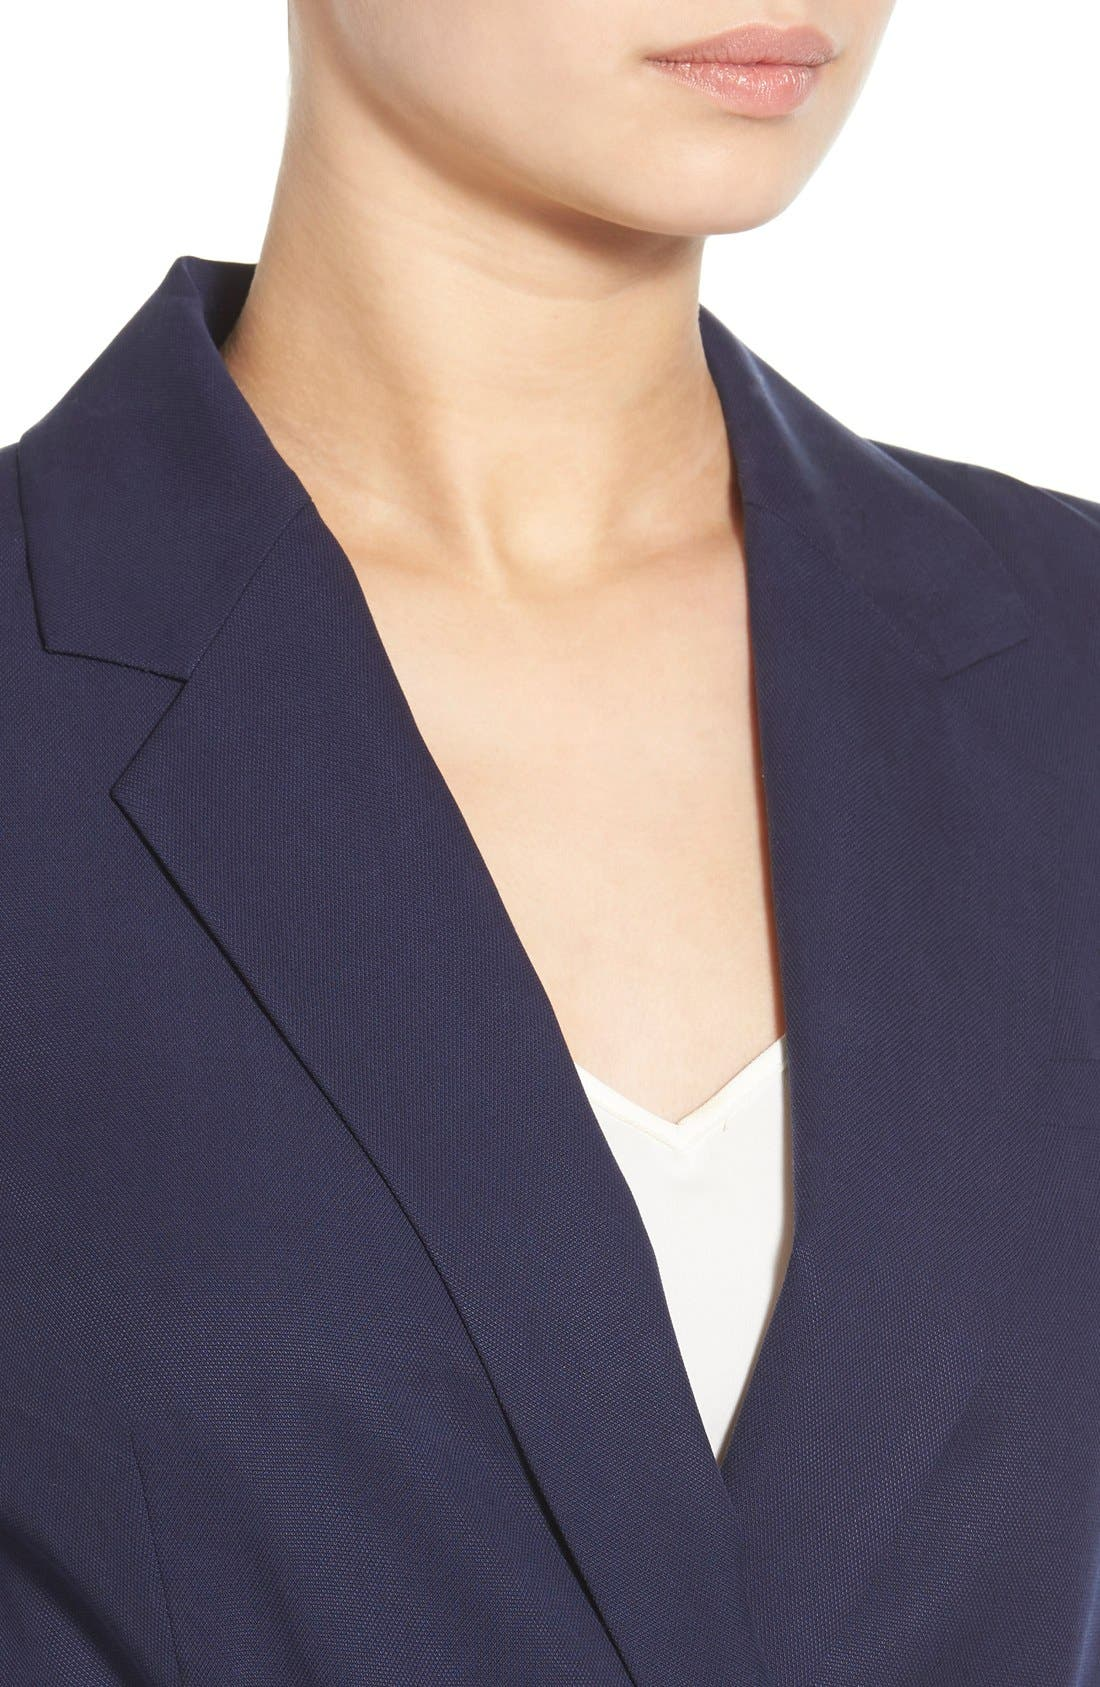 Belted Double Breasted Blazer,                             Alternate thumbnail 4, color,                             Evening Navy